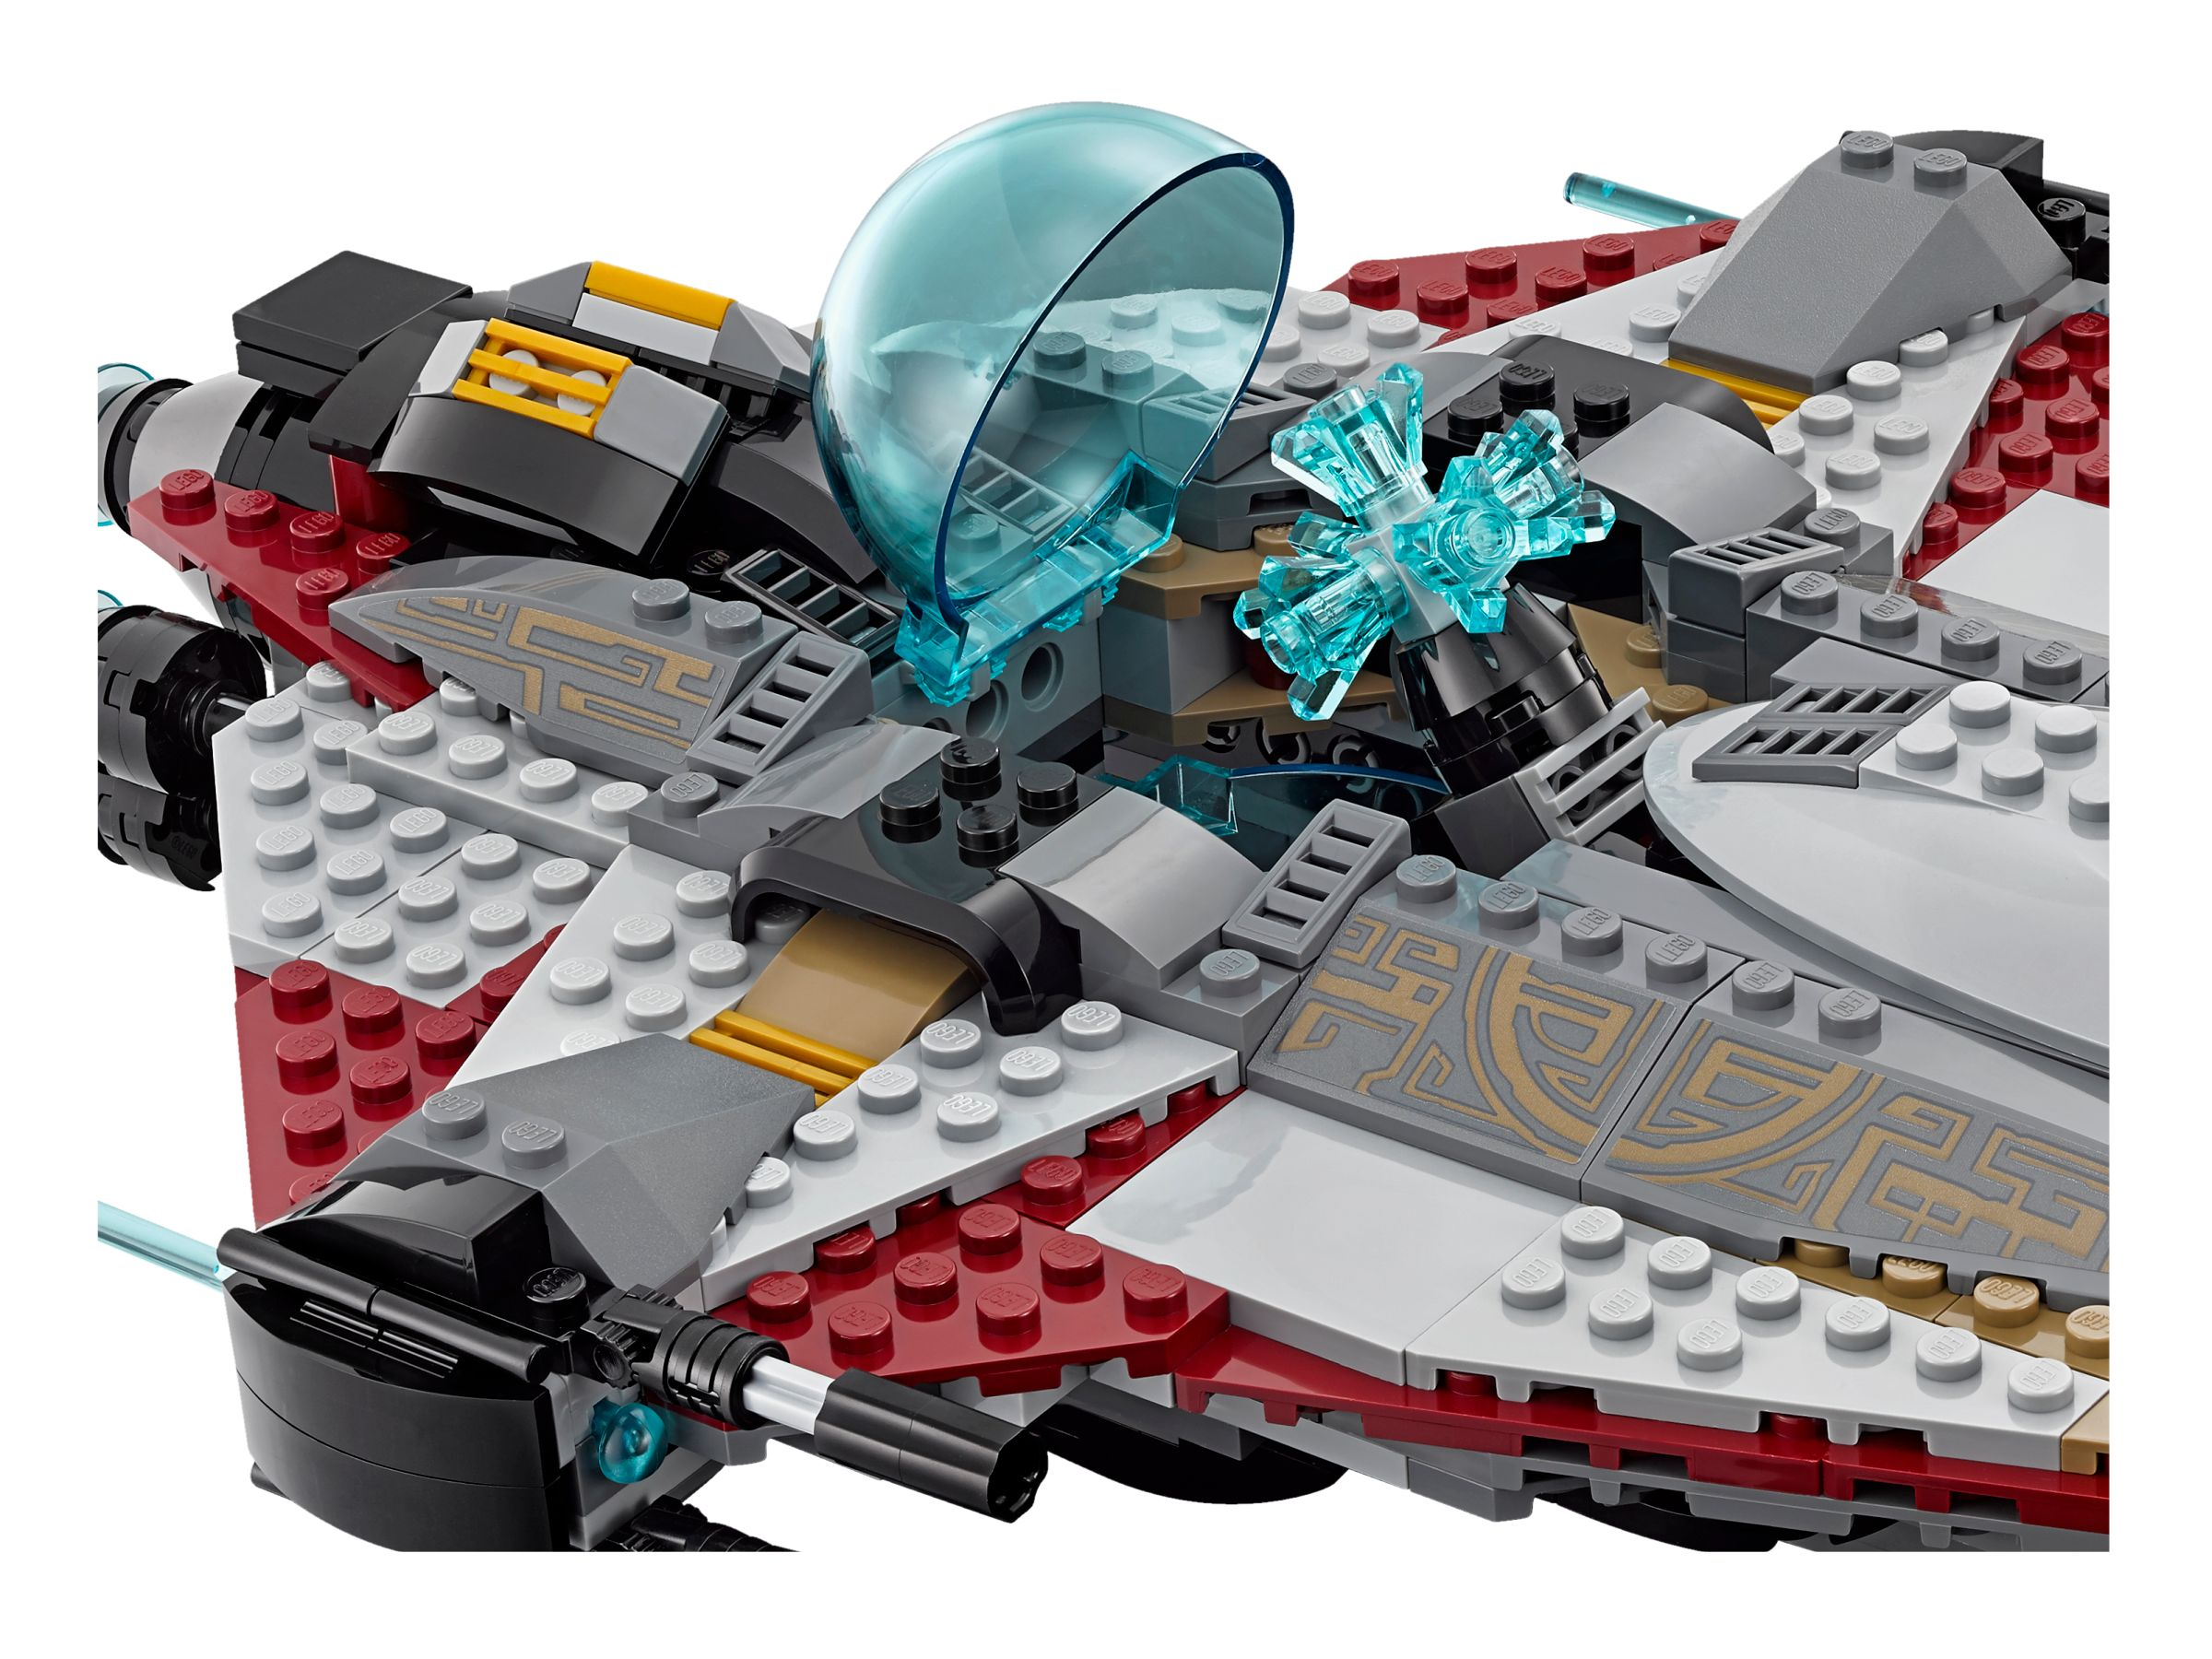 LEGO Star Wars 75186 The Arrowhead LEGO_75186_alt5.jpg